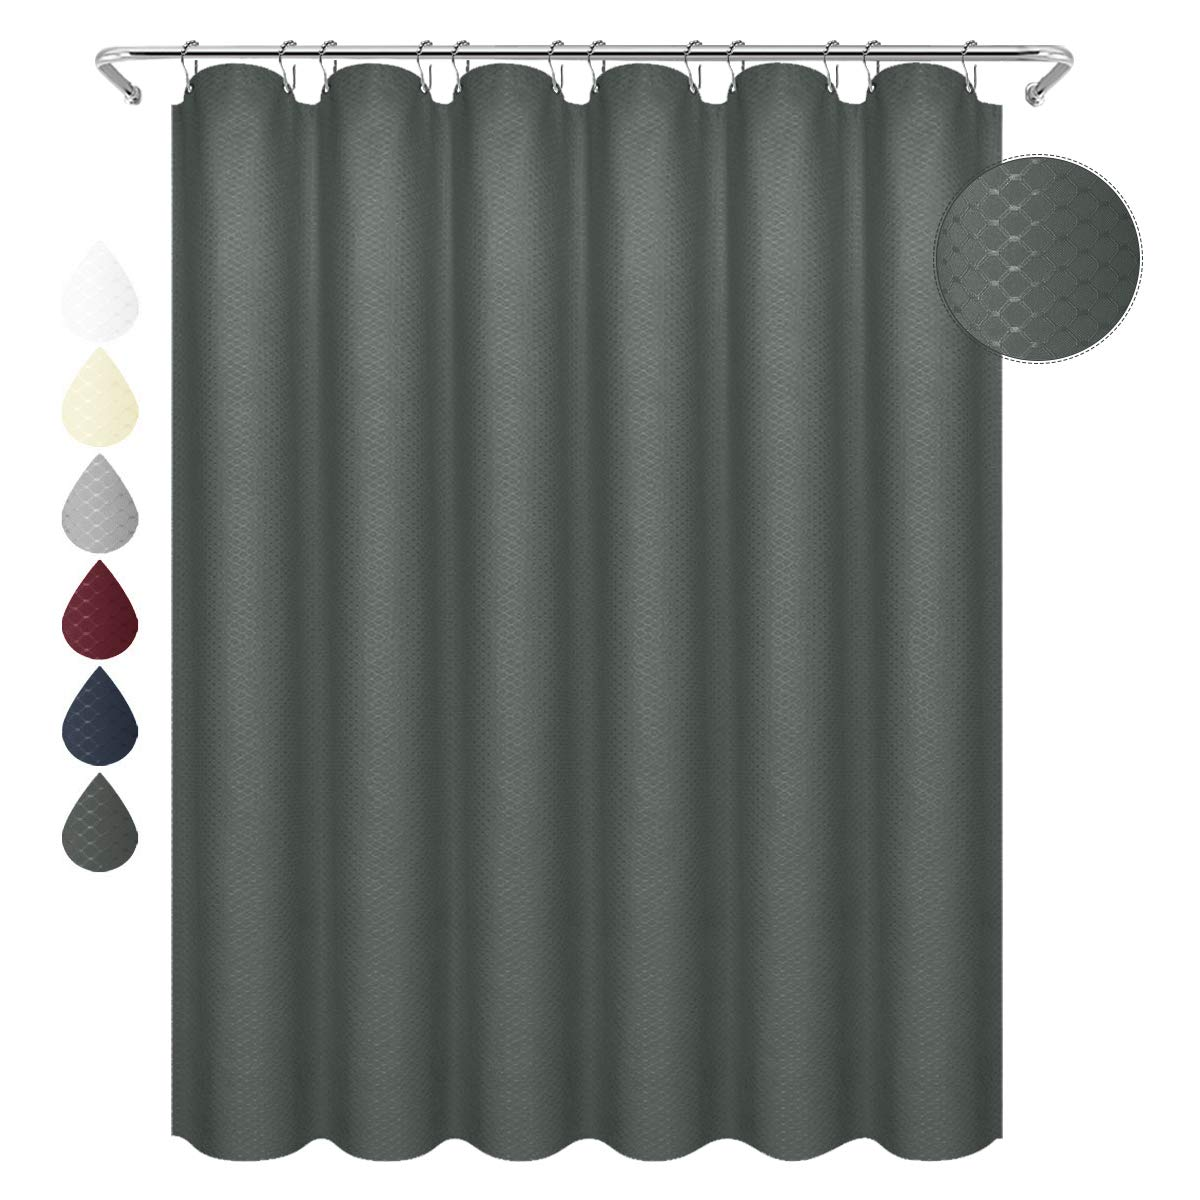 Eforgift Easy Clean 100 Polyester Shower Curtain Water Repellent Thickened Charcoal Waffle Weave Cloth Bathroom Curtain Long 72 Inch X 78 Inch Home Hotel Decor